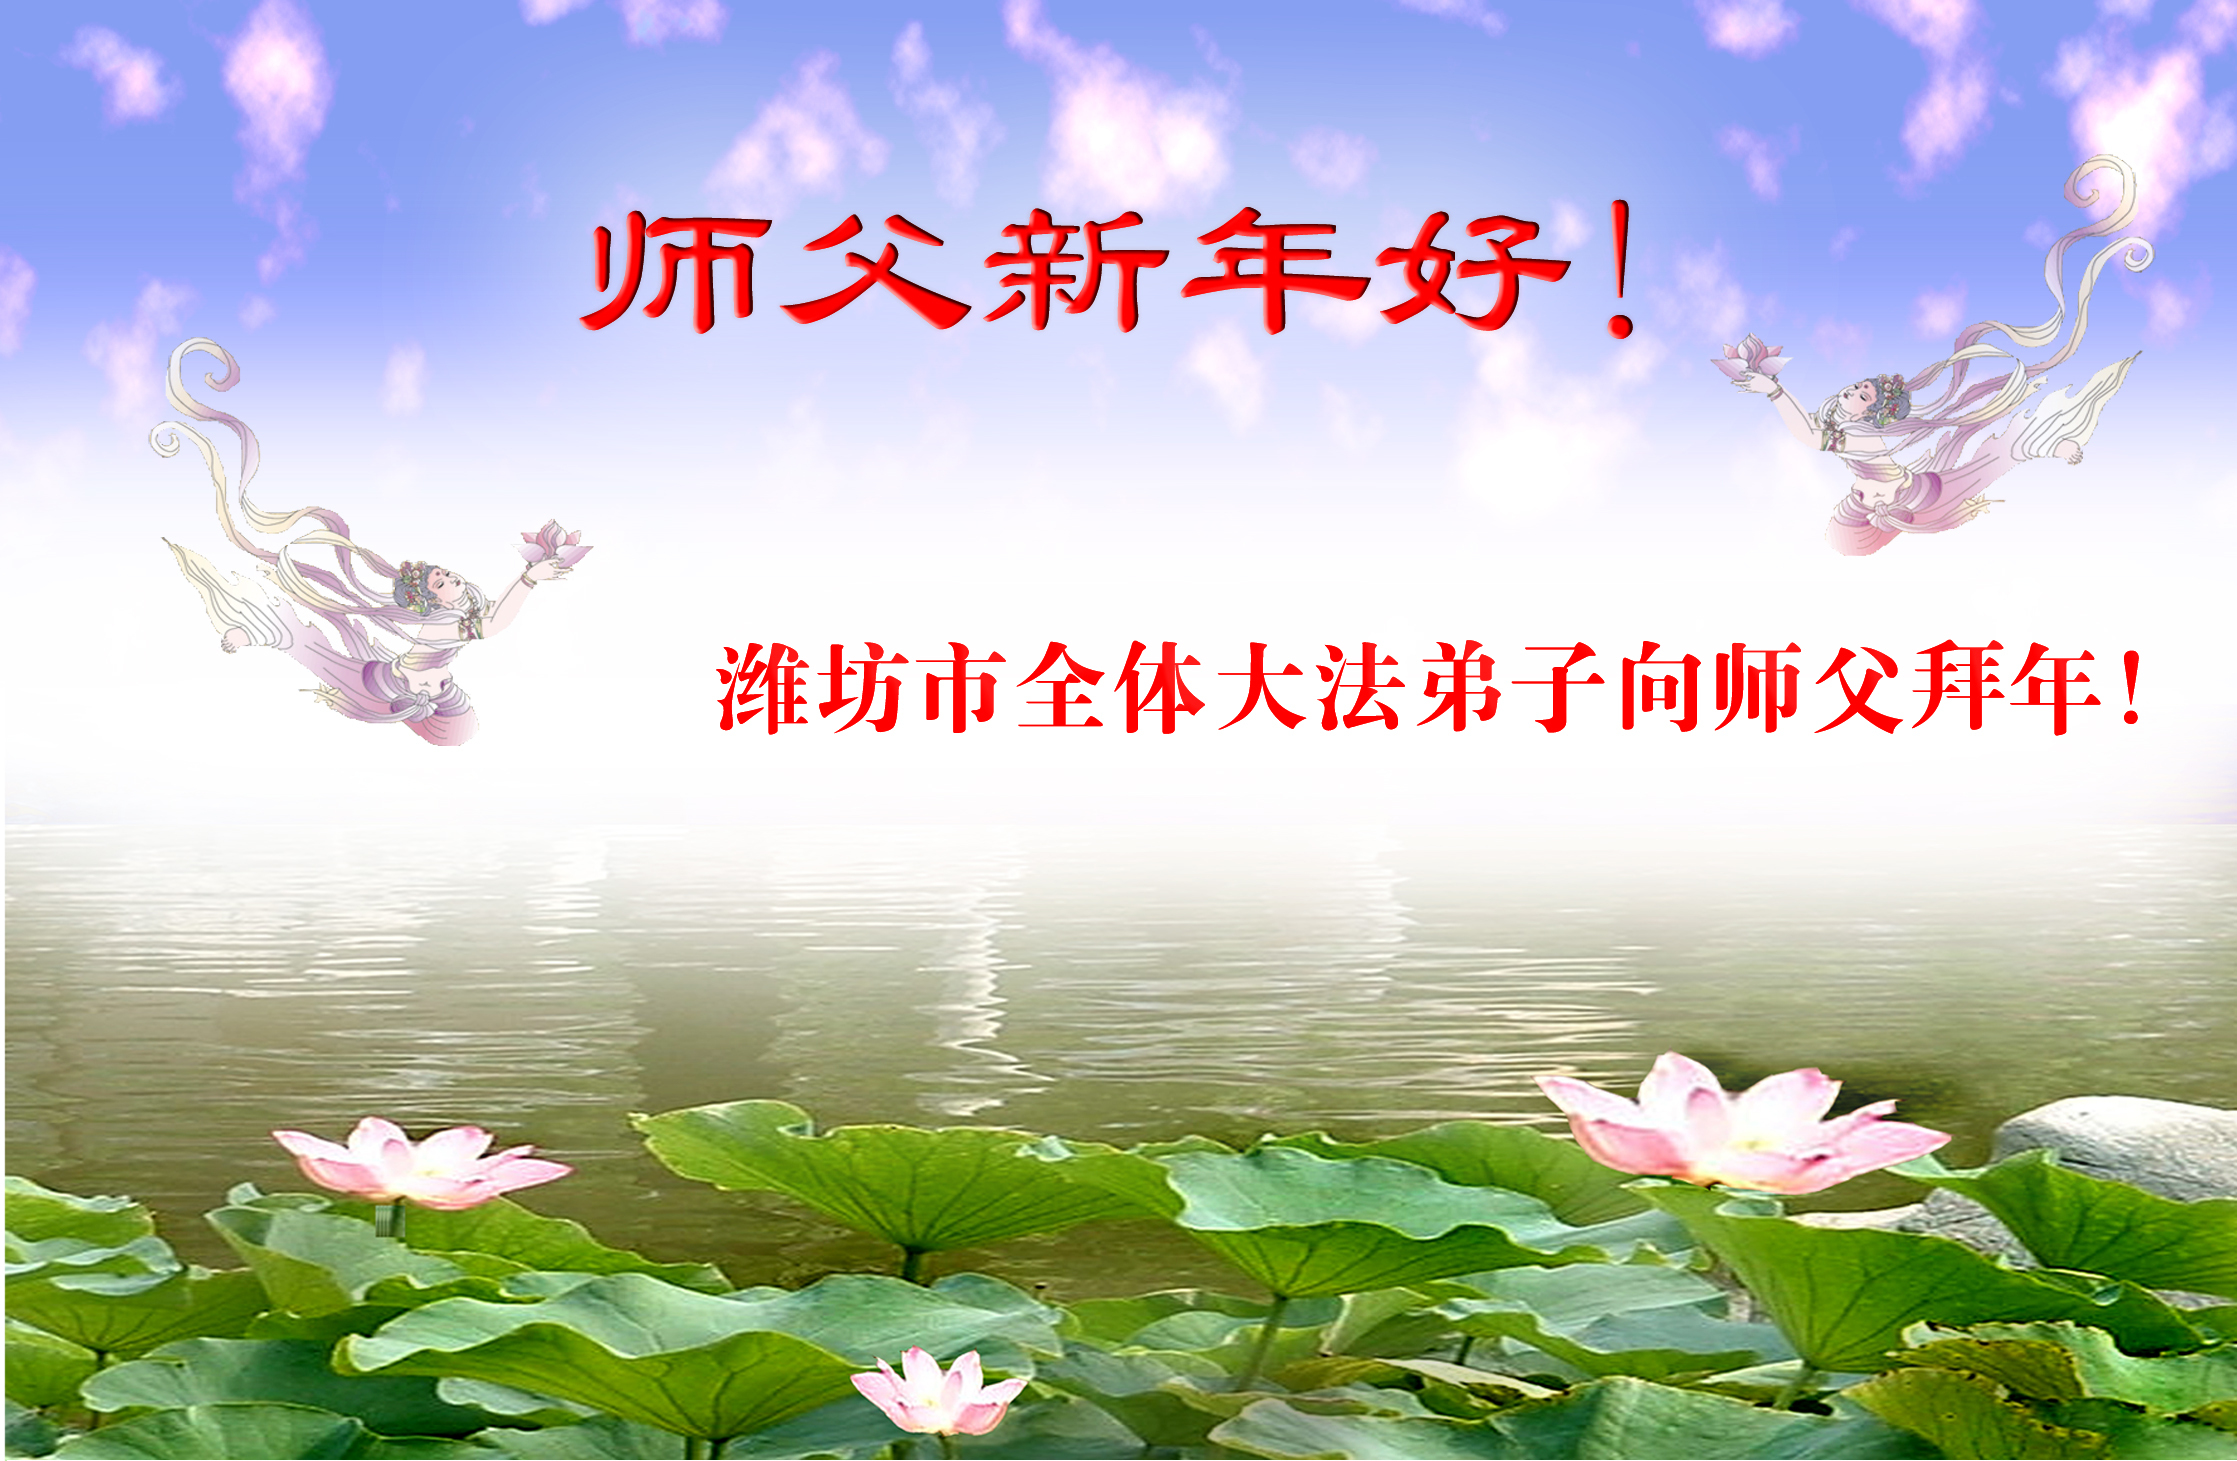 New year greeting words